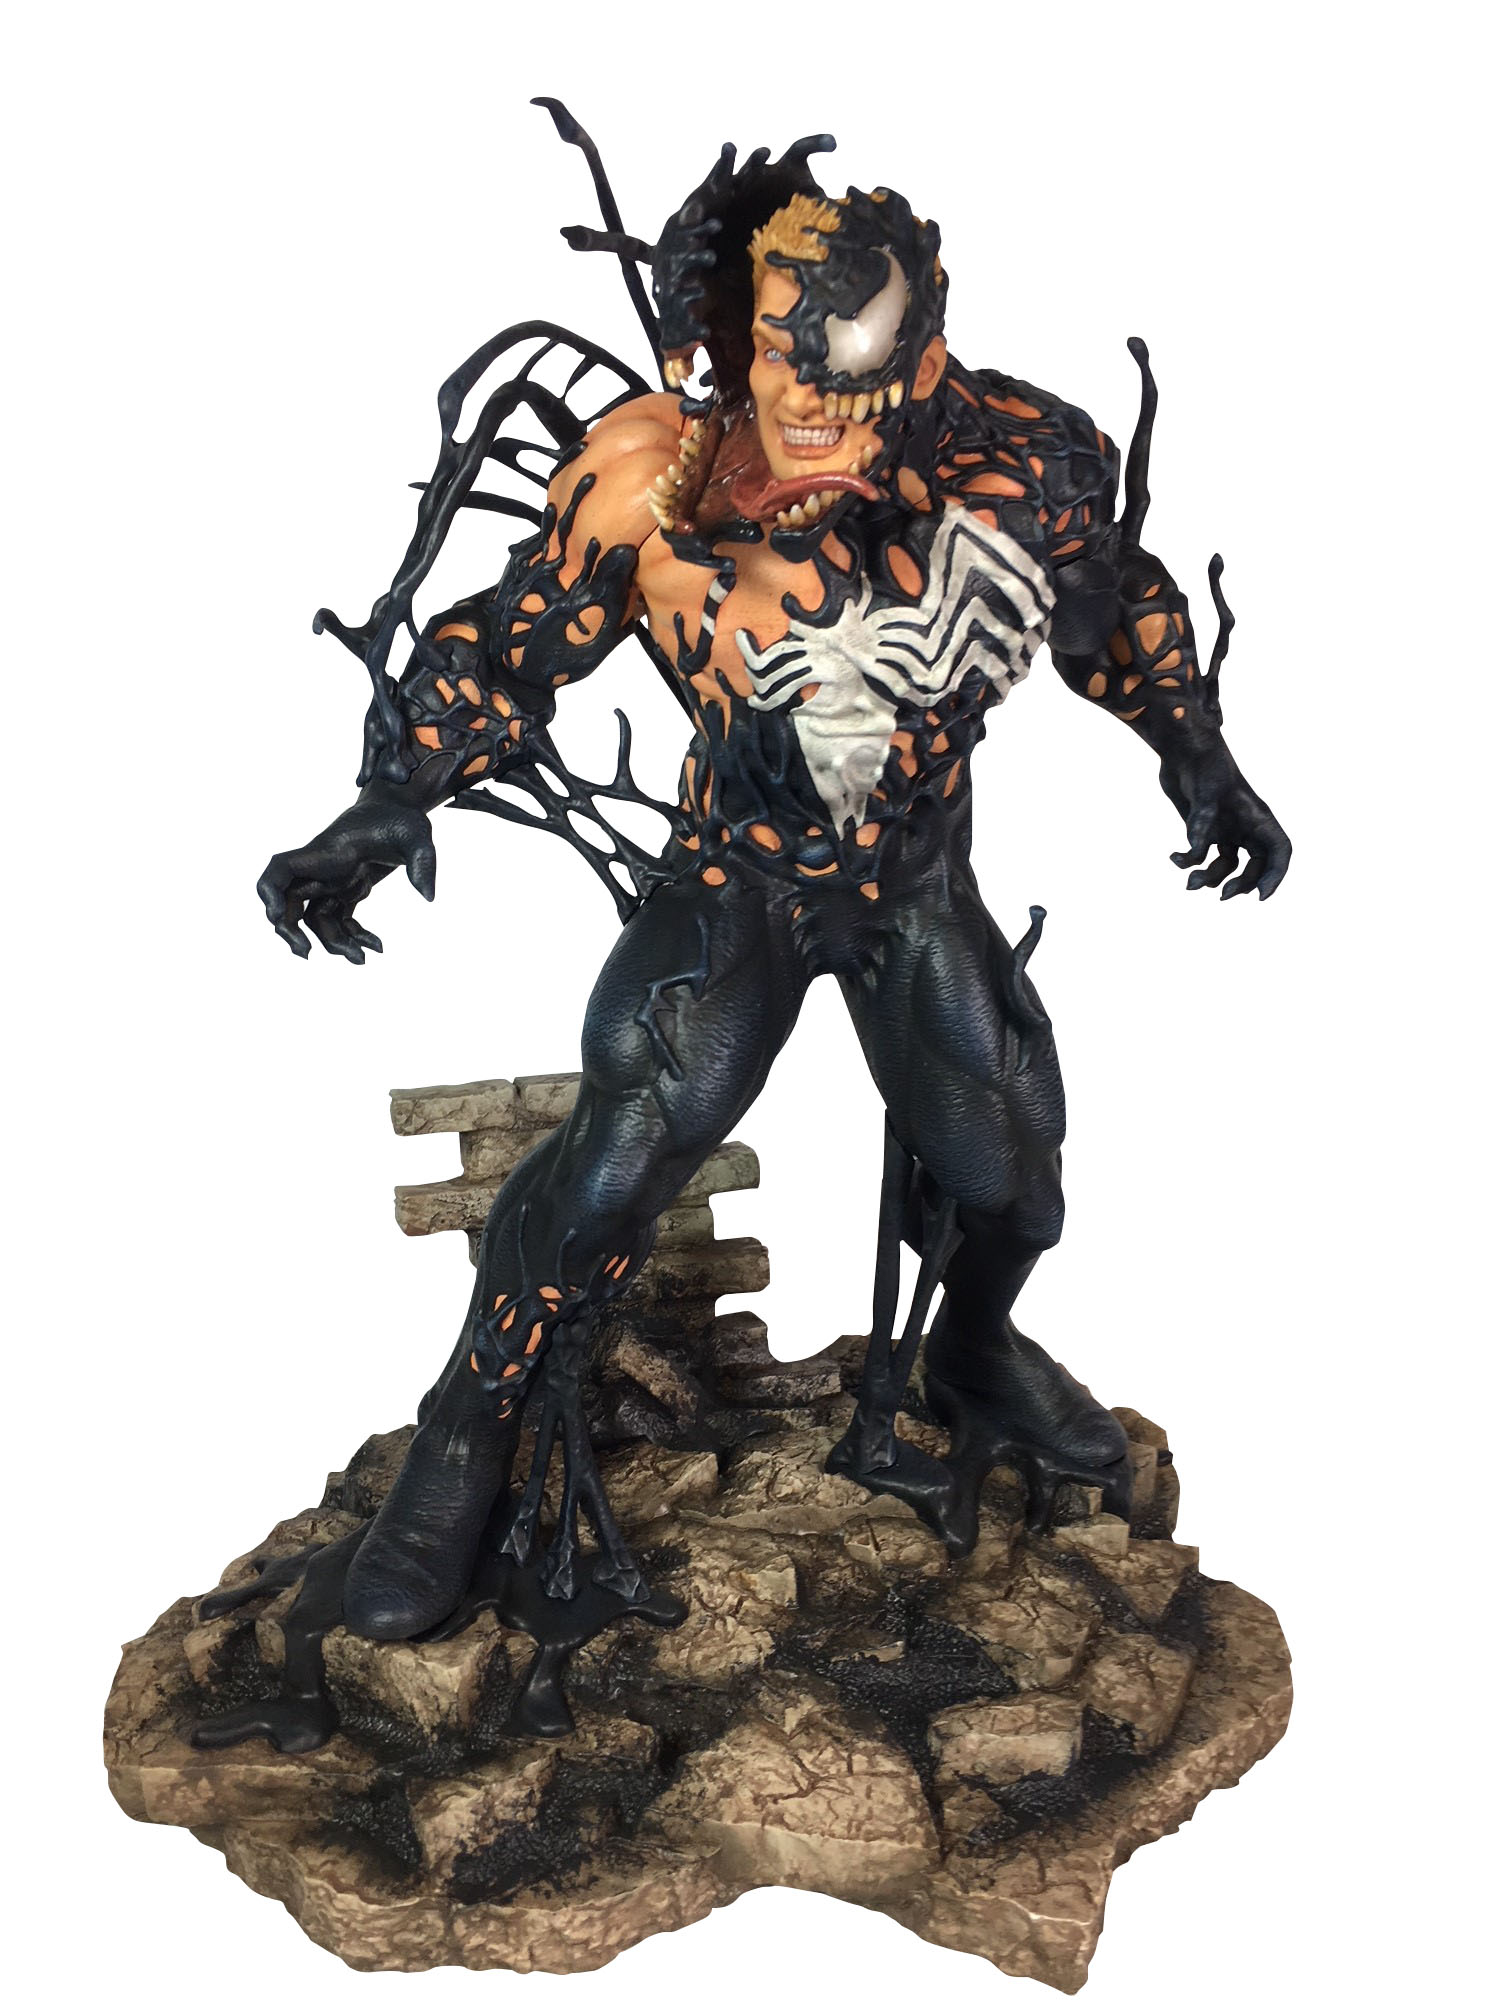 MARVEL GALLERY VENOM COMIC PVC FIGURE